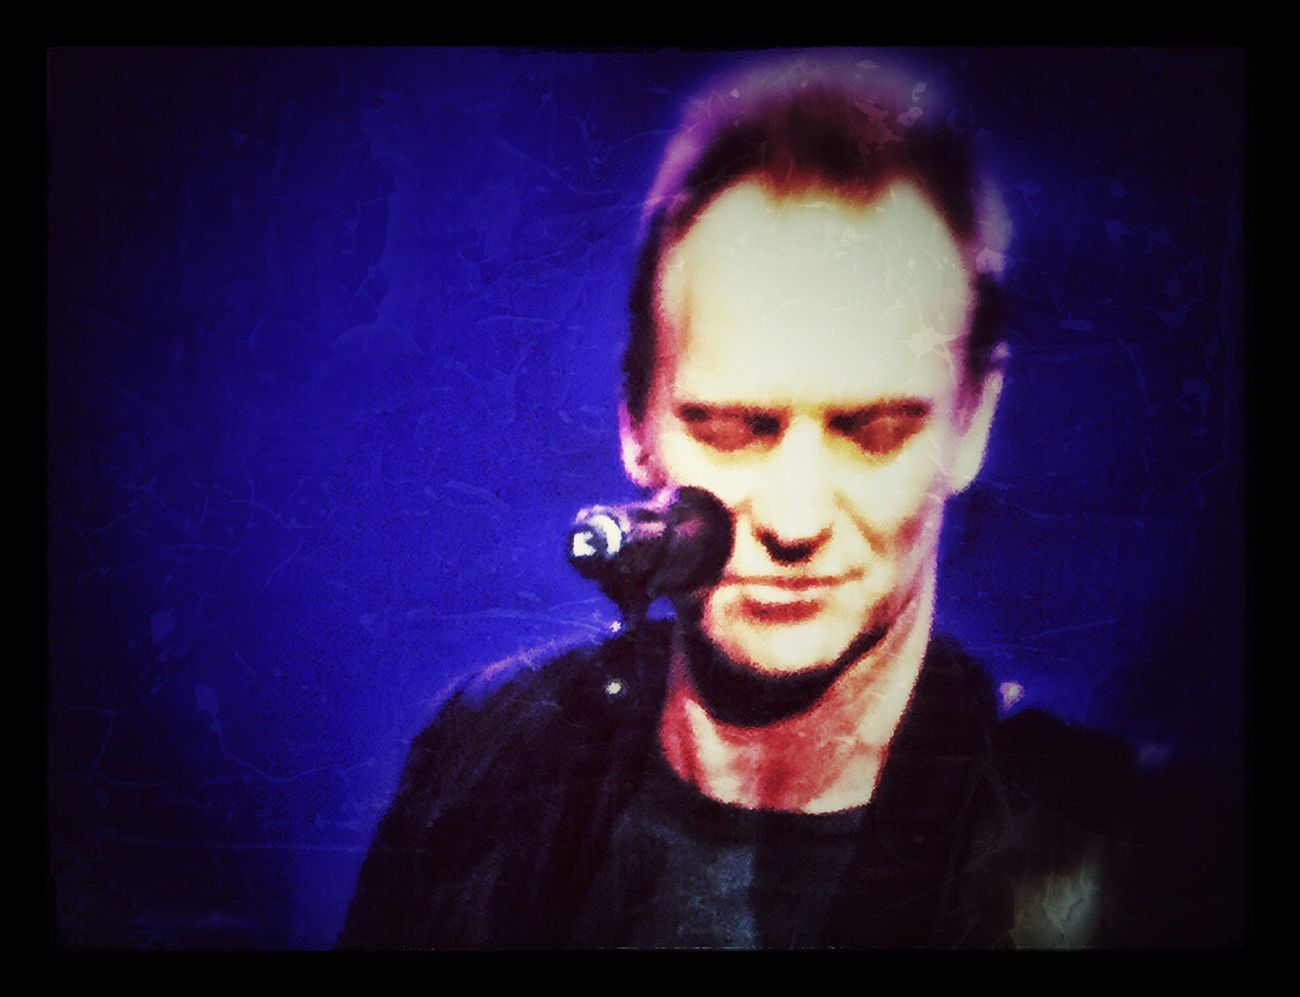 Sting On Stage Iphonephotography Musicians Artists Singer/Song Writer